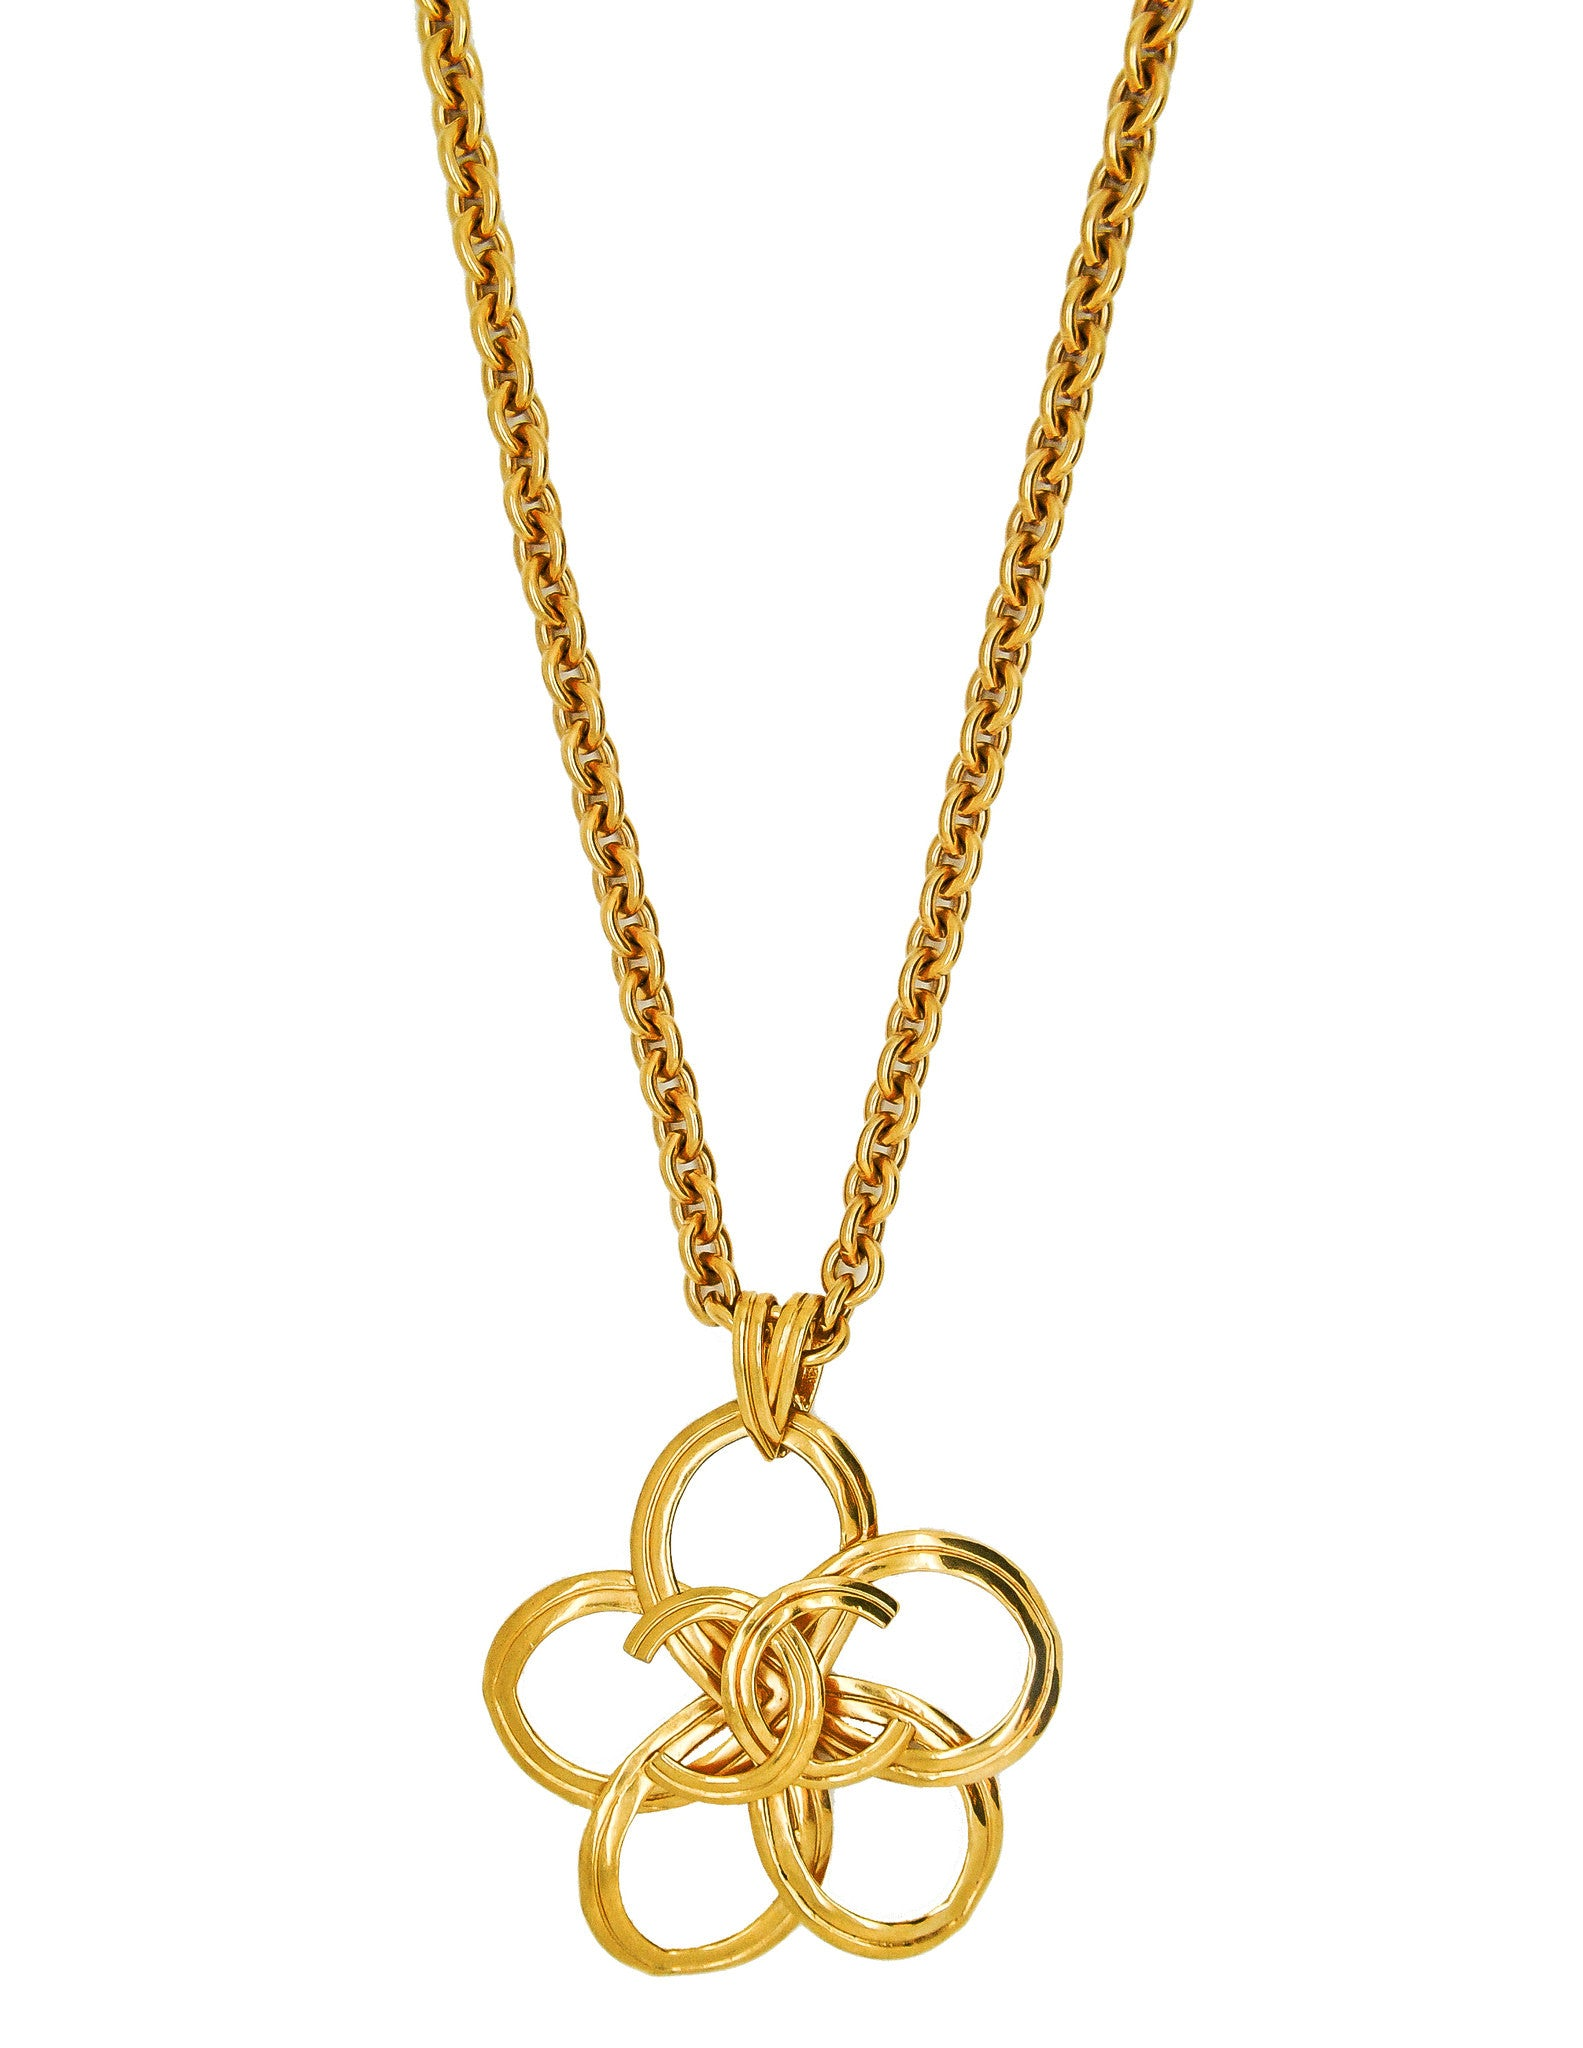 Chanel Vintage Gold Camellia Flower Necklace - Amarcord Vintage Fashion  - 1